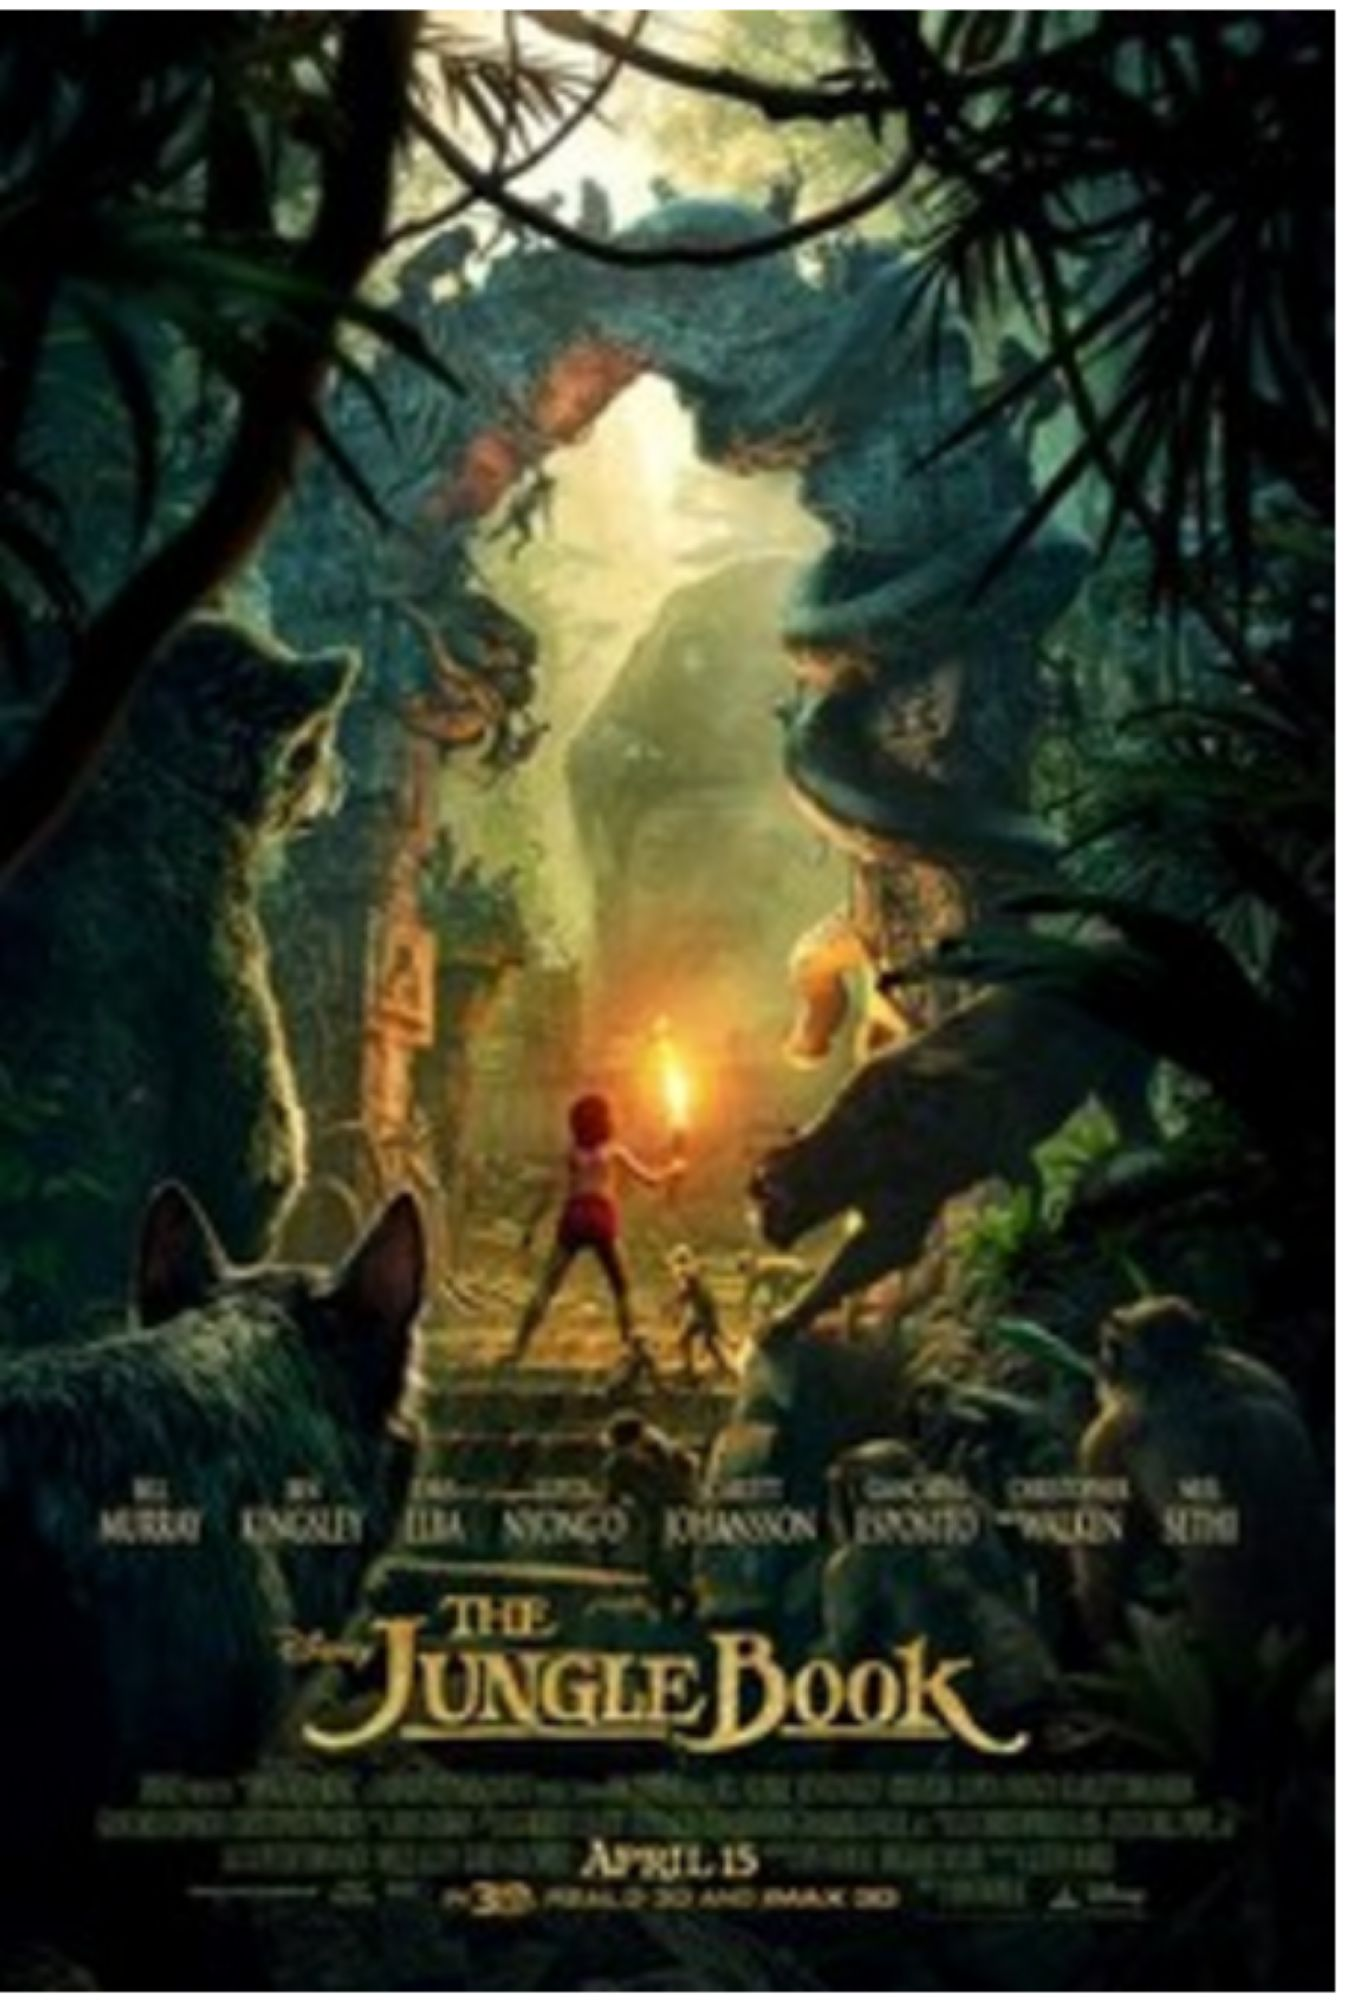 05-The-Jungle-Book.jpg